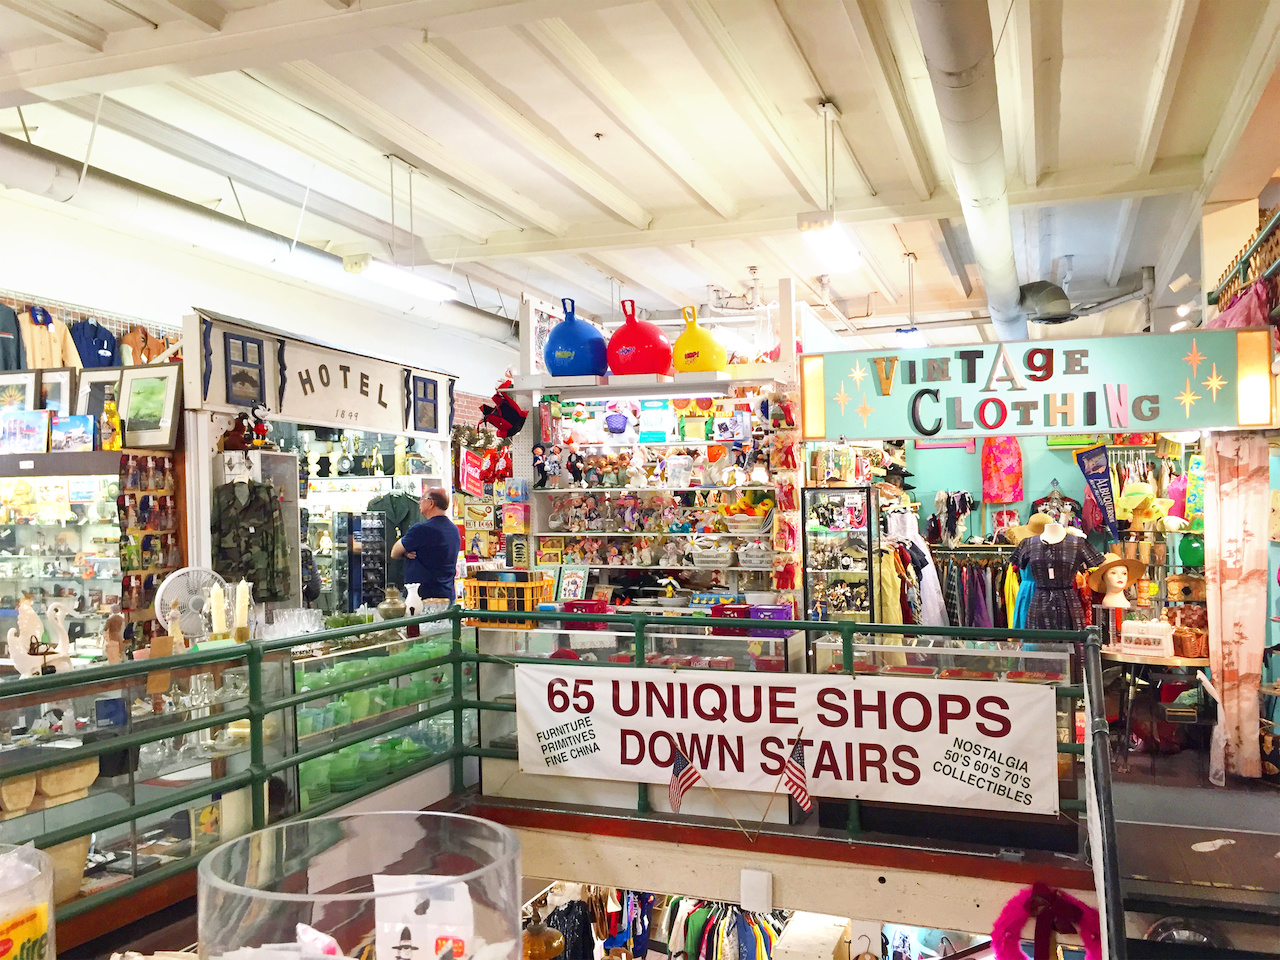 The Orange Circle Antique Mall is two floors of vintage clothing, collectibles and antiques.